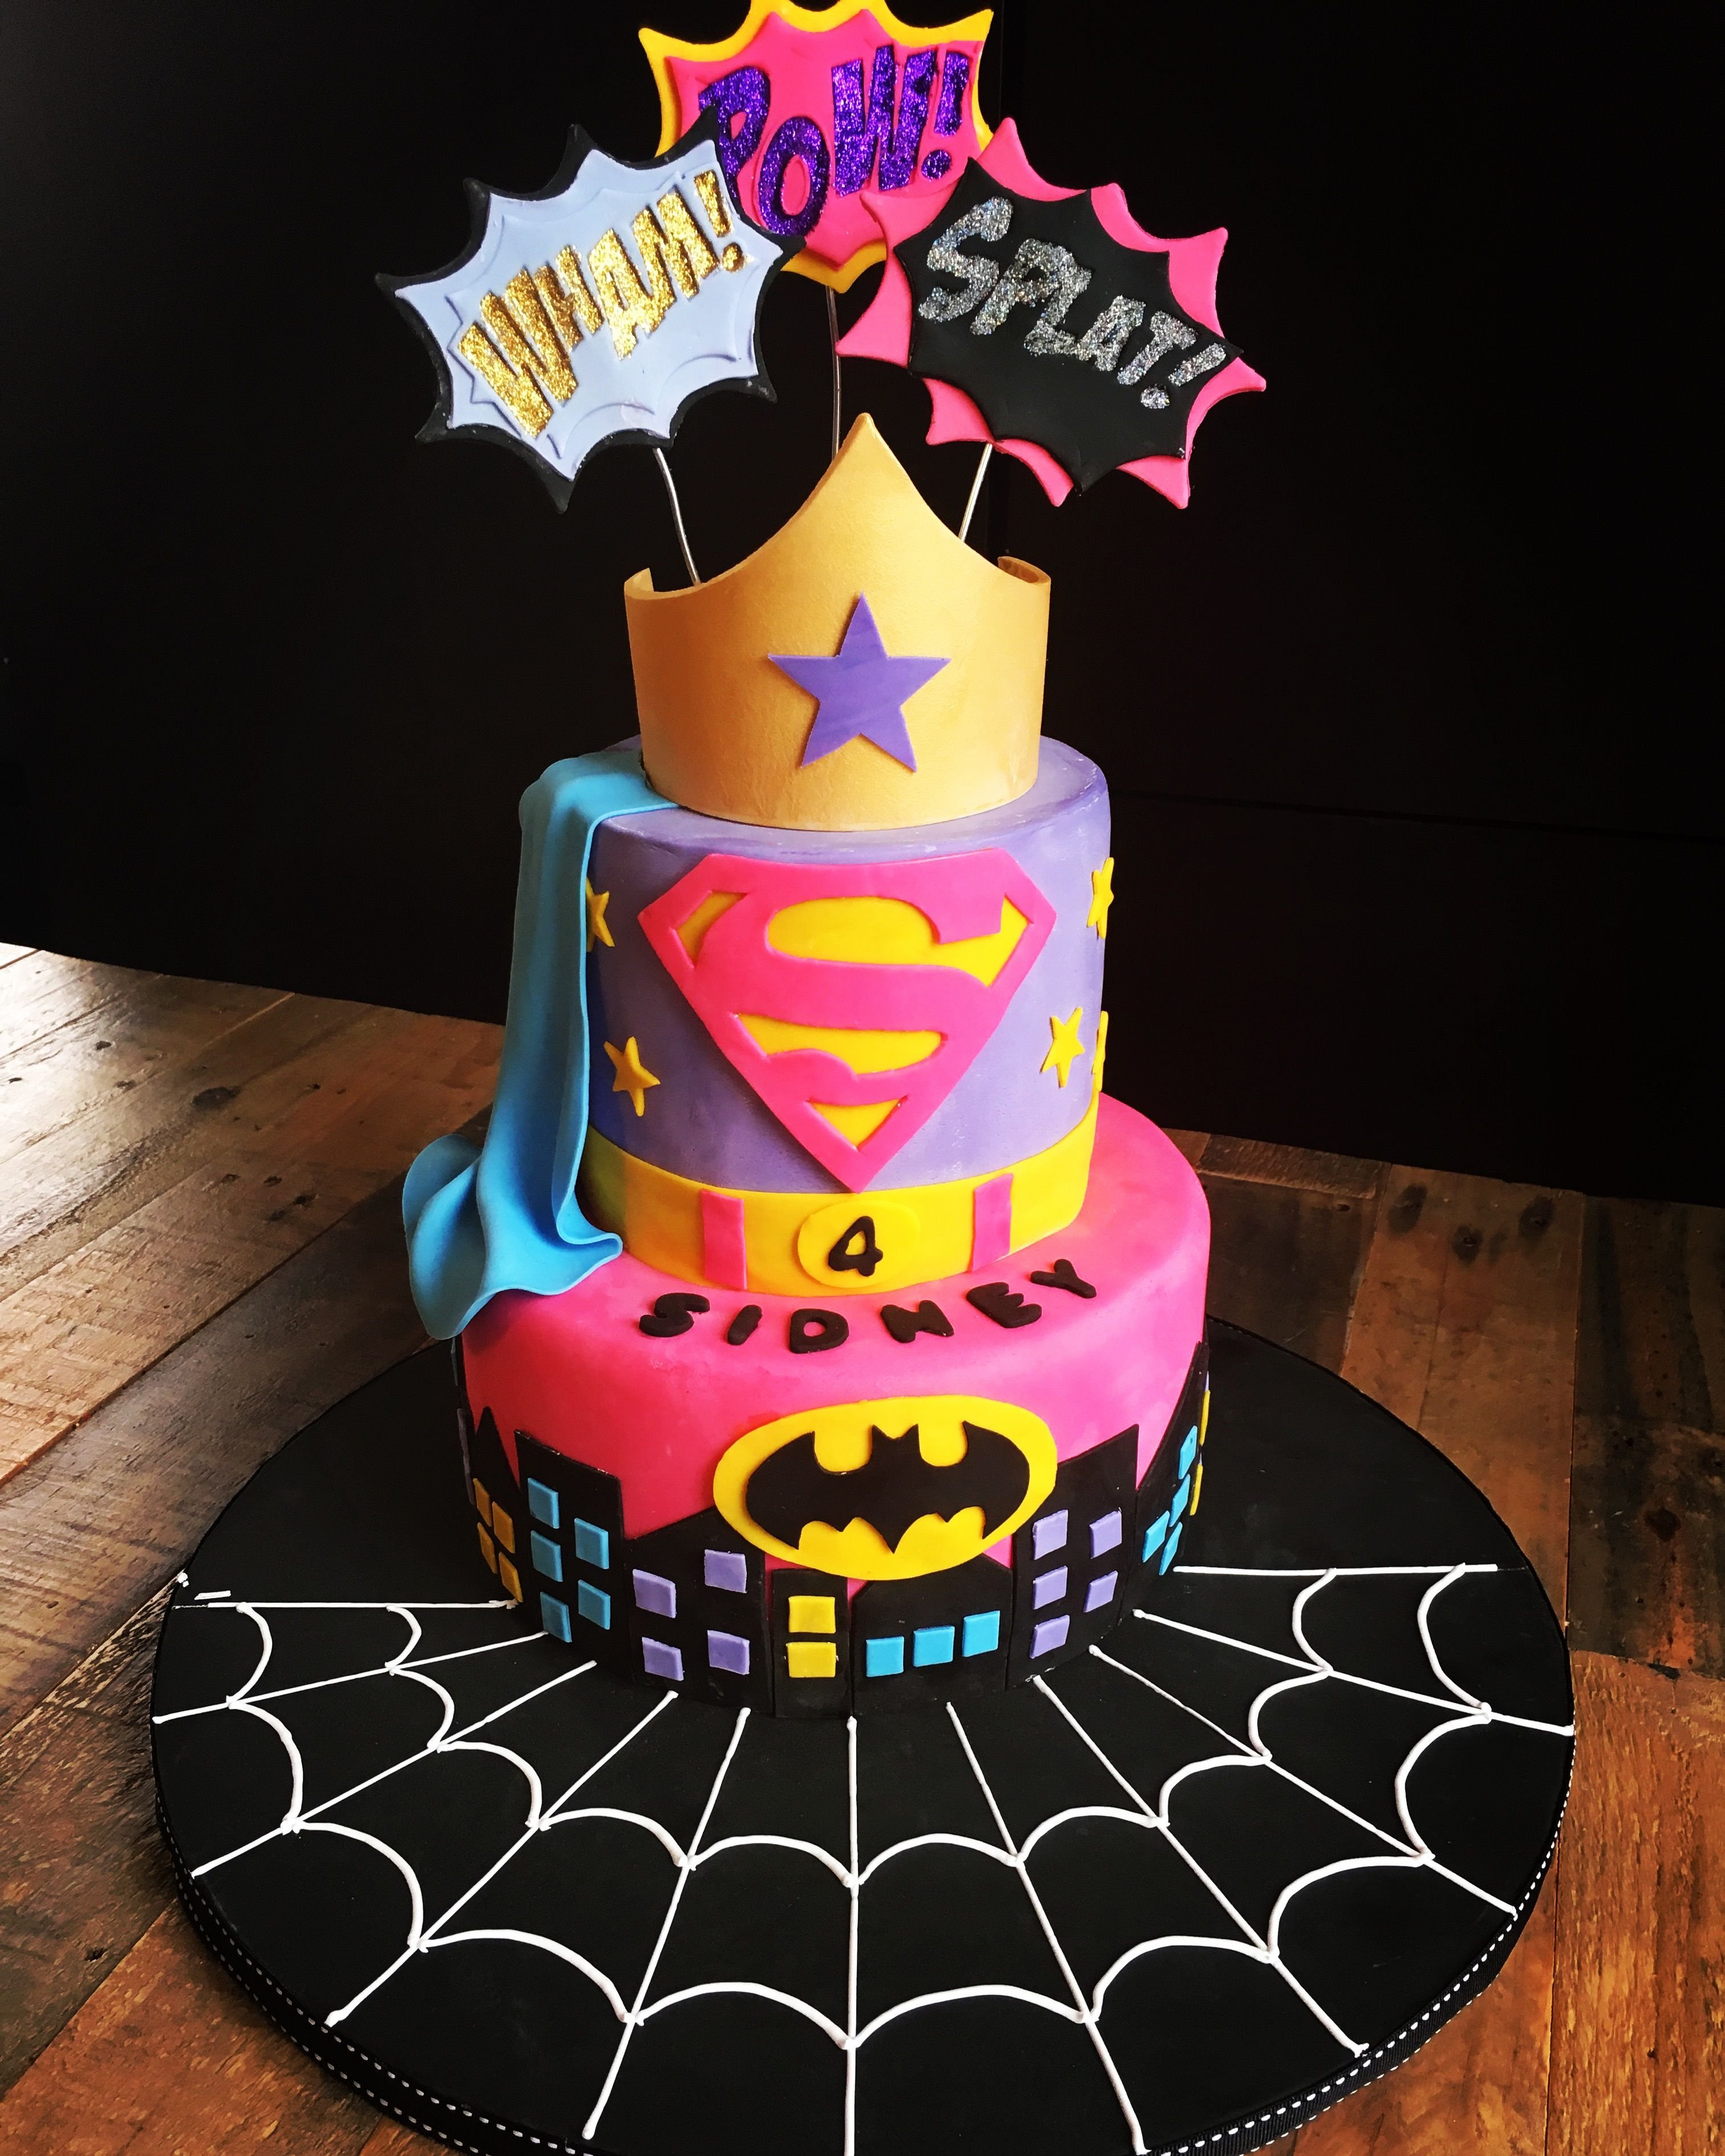 Super hero cake for girls for more ideas follow annhelmbaxter on